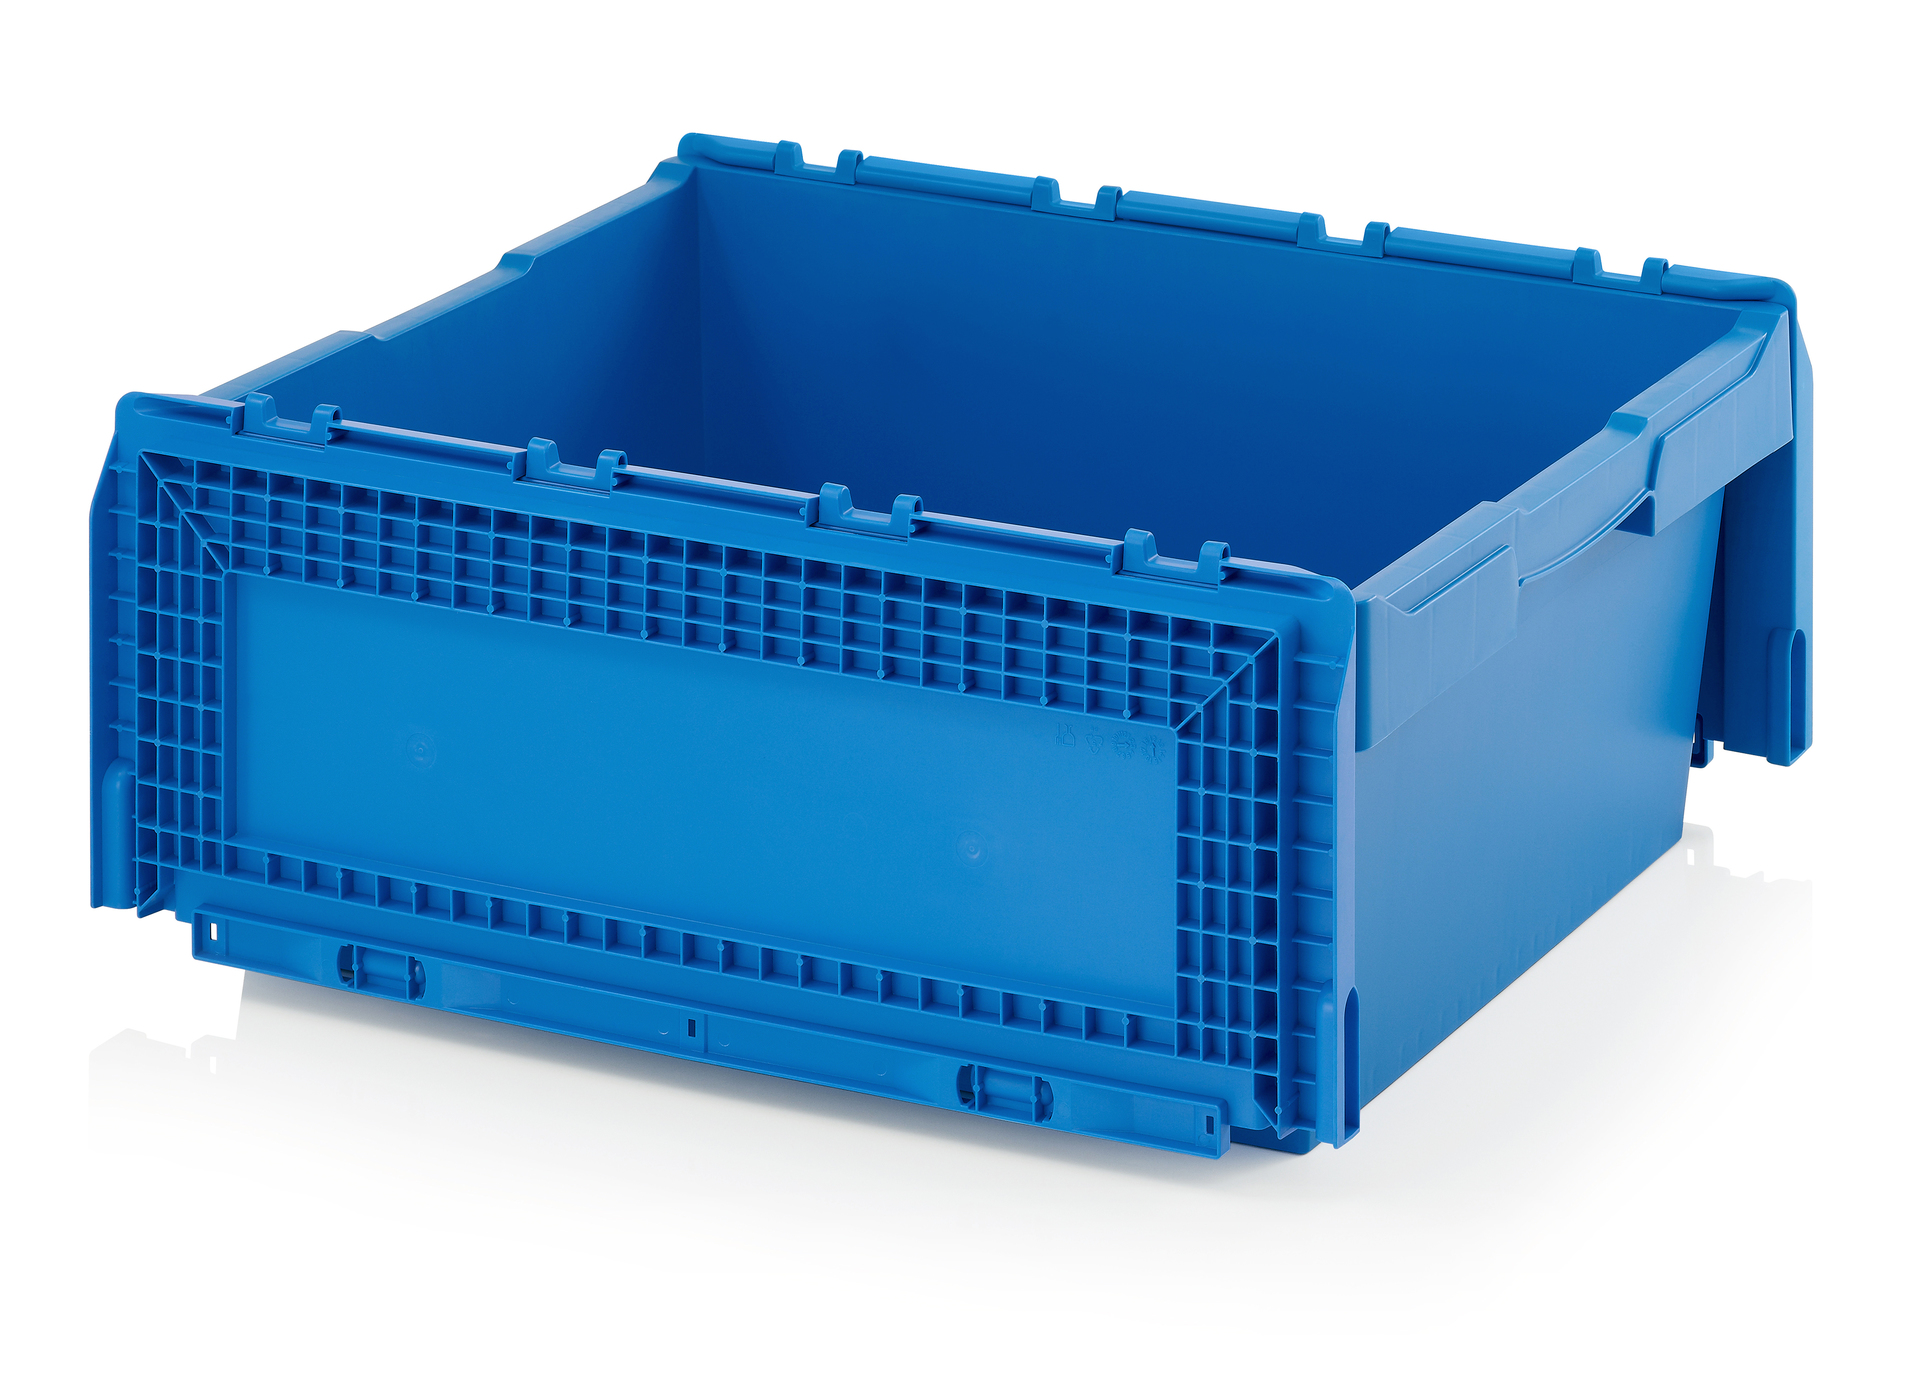 RC8320L_2 Reusable Containers - Plastic Mouldings Northern